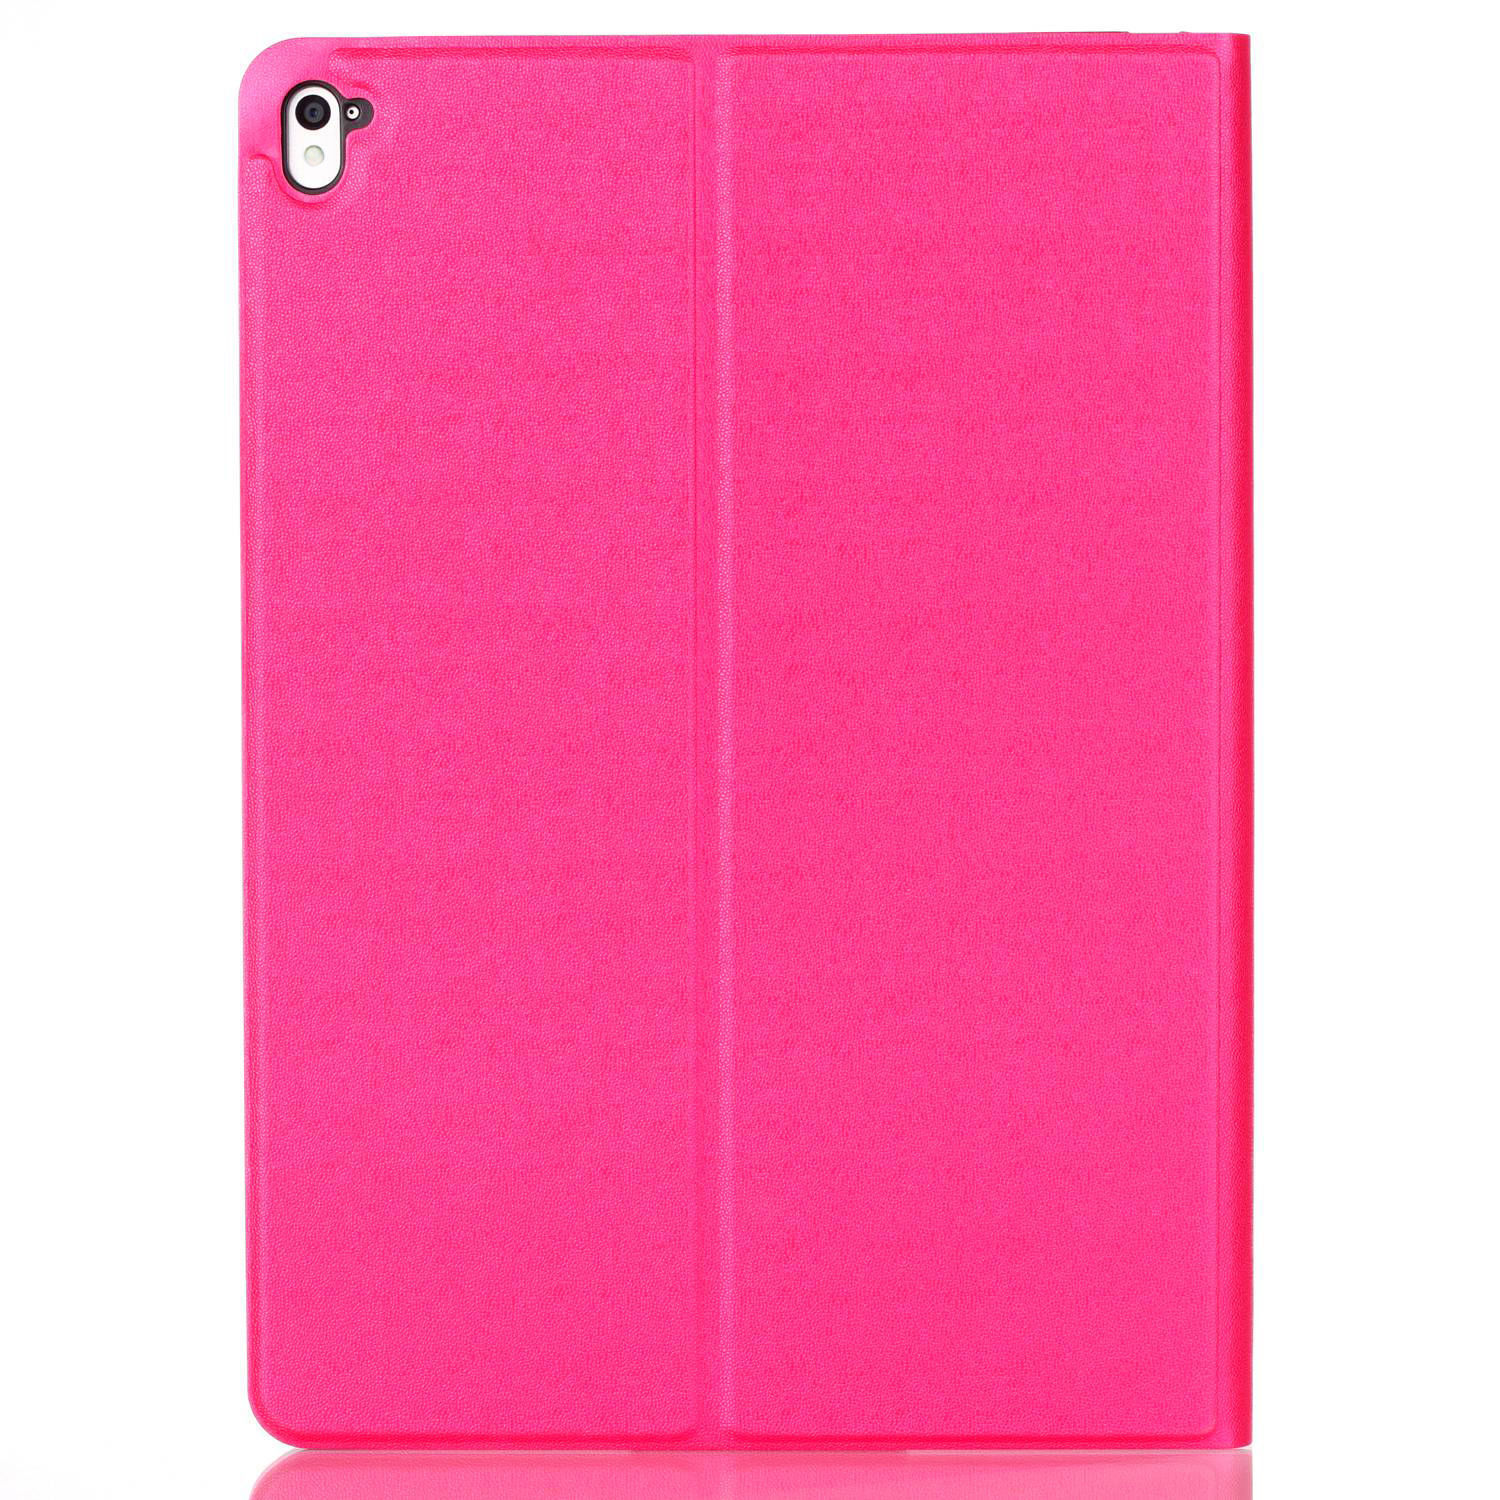 Custodia-Per-Apple-IPAD-Pro-IN-9-7-Pollici-Case-Cover-Protettiva-Skin-Shell miniatura 35